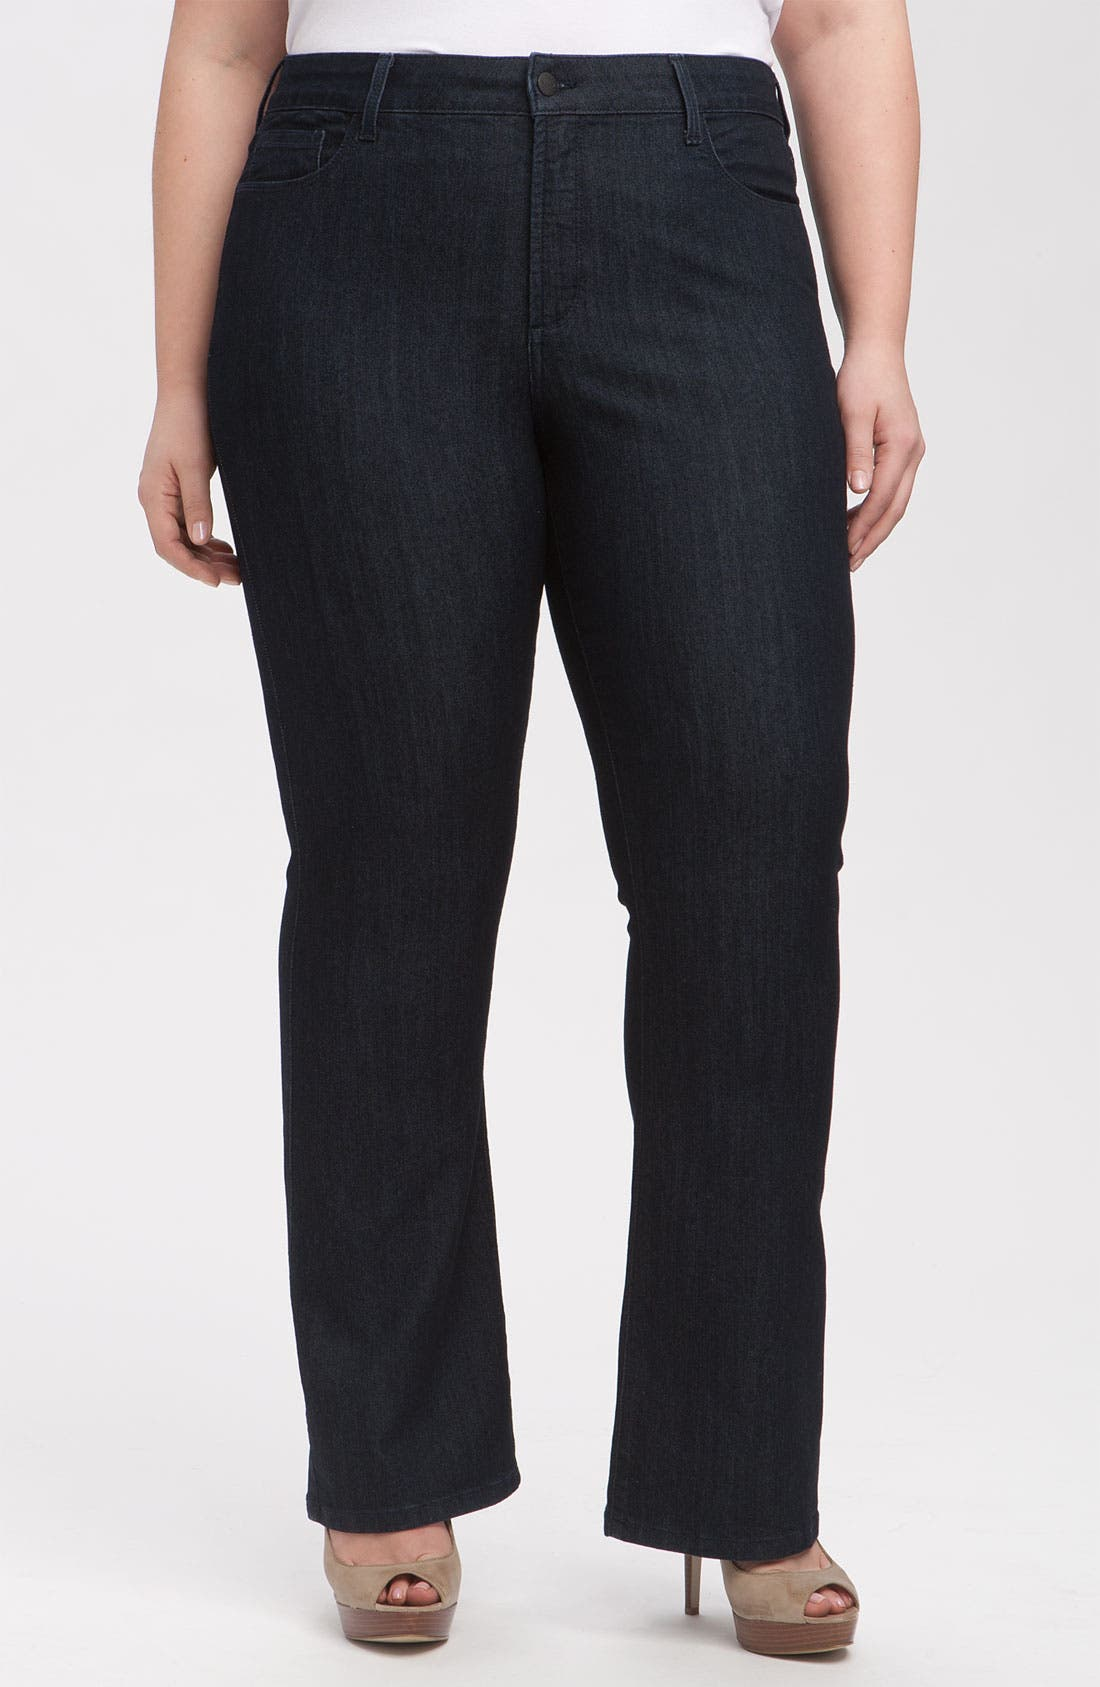 Main Image - NYDJ 'Barbara' Stretch Bootcut Jeans (Dark Enzyme) (Petite Plus Size)